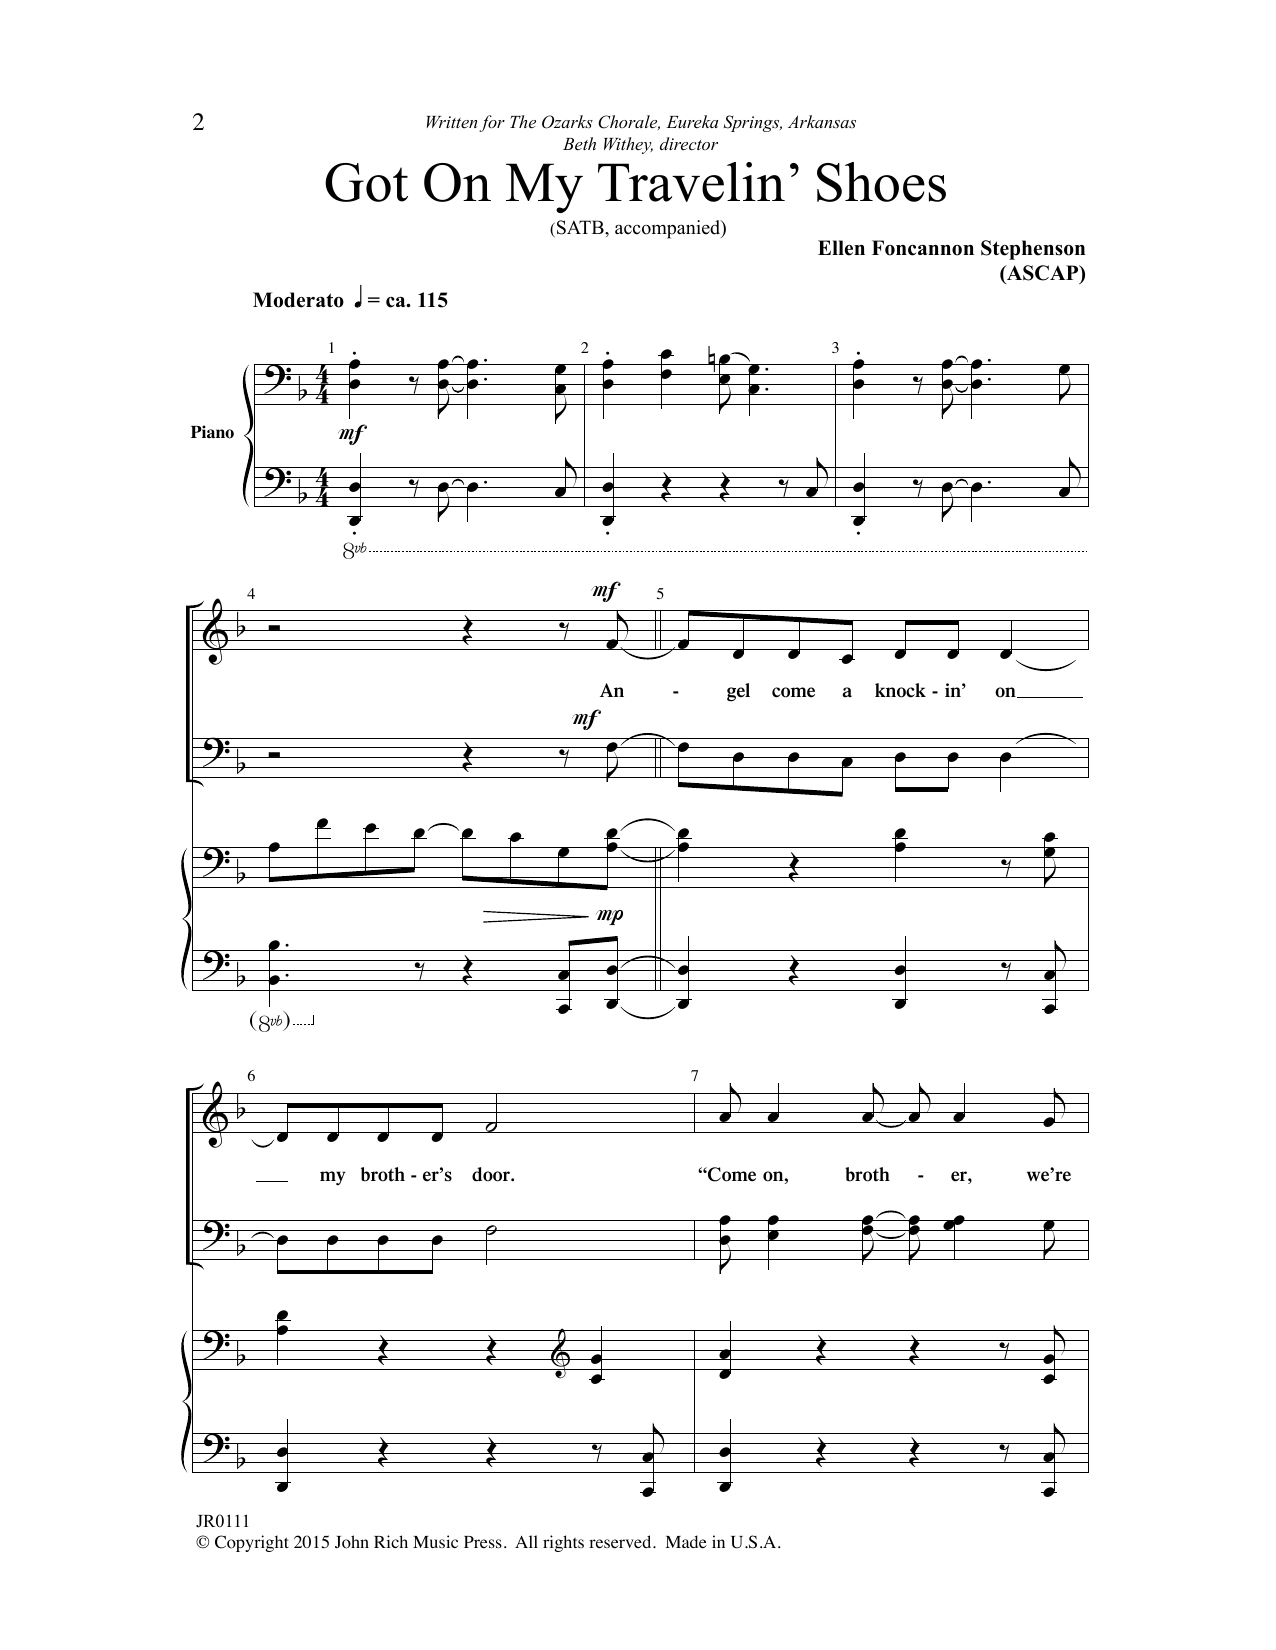 Got on My Travelin' Shoes Sheet Music